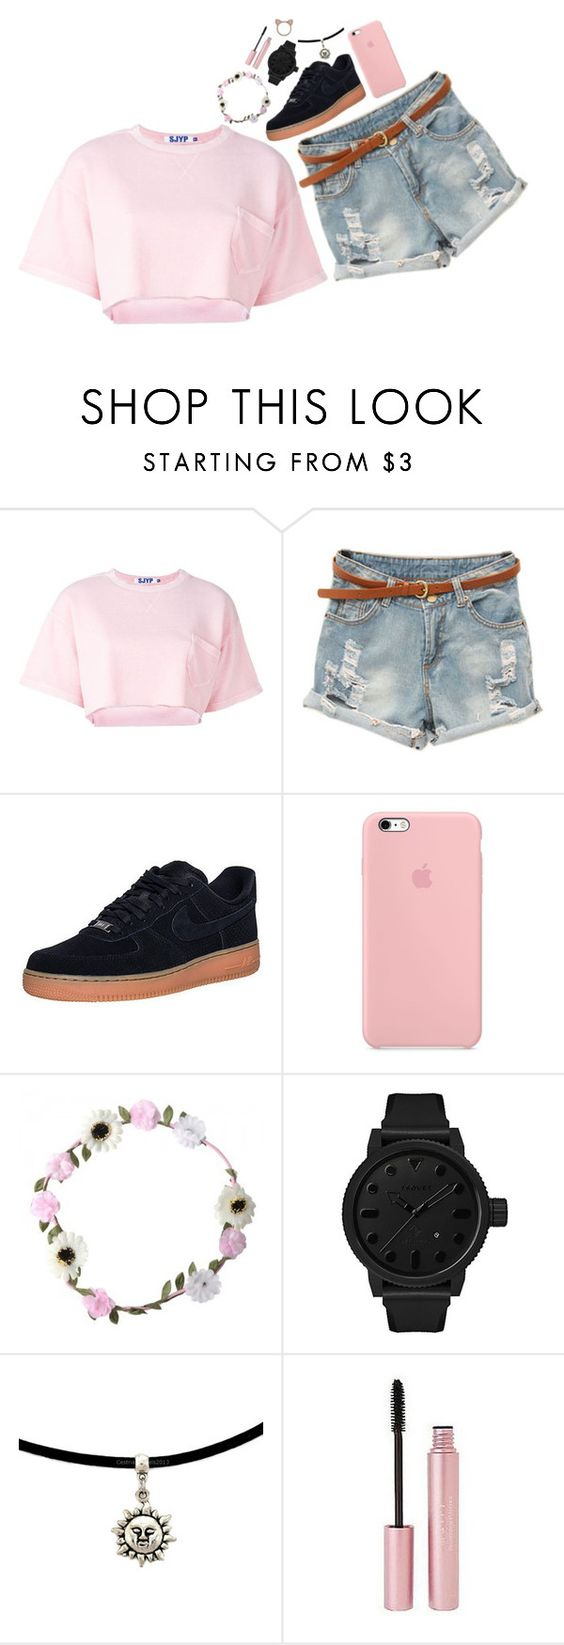 """Untitled #739"" by ema-kitty ❤ liked on Polyvore featuring Steve J & Yoni P, NIKE, Tsovet, Mally and Aamaya by priyanka"